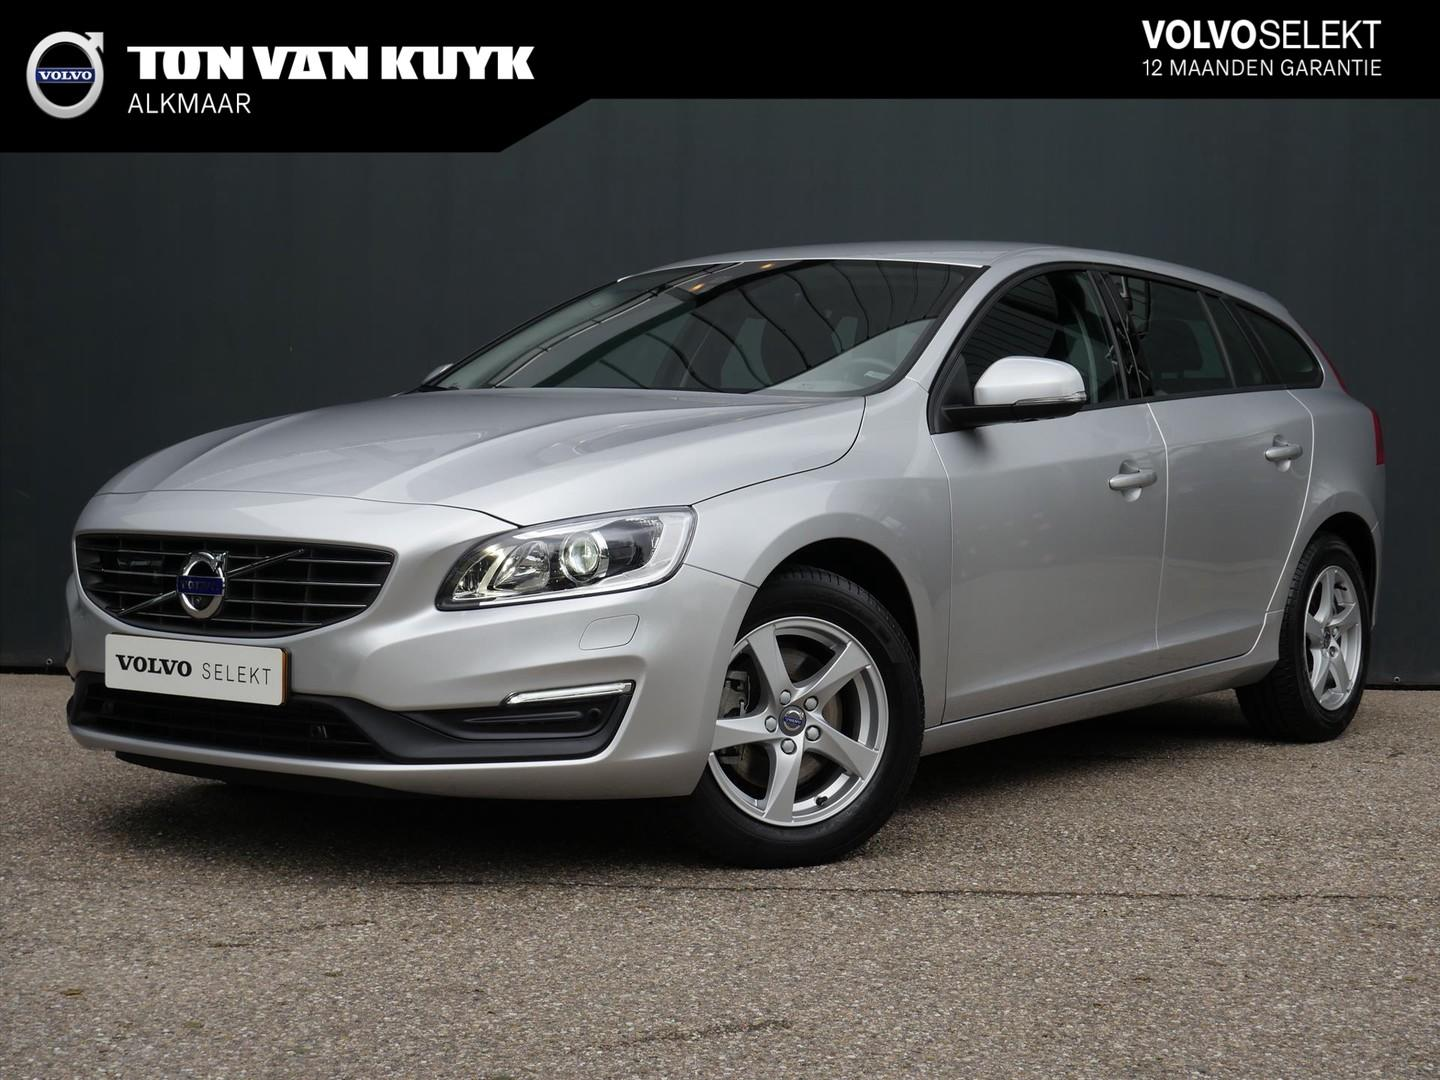 Volvo V60 T3 autm kinetic / intellisafe / trekhaak